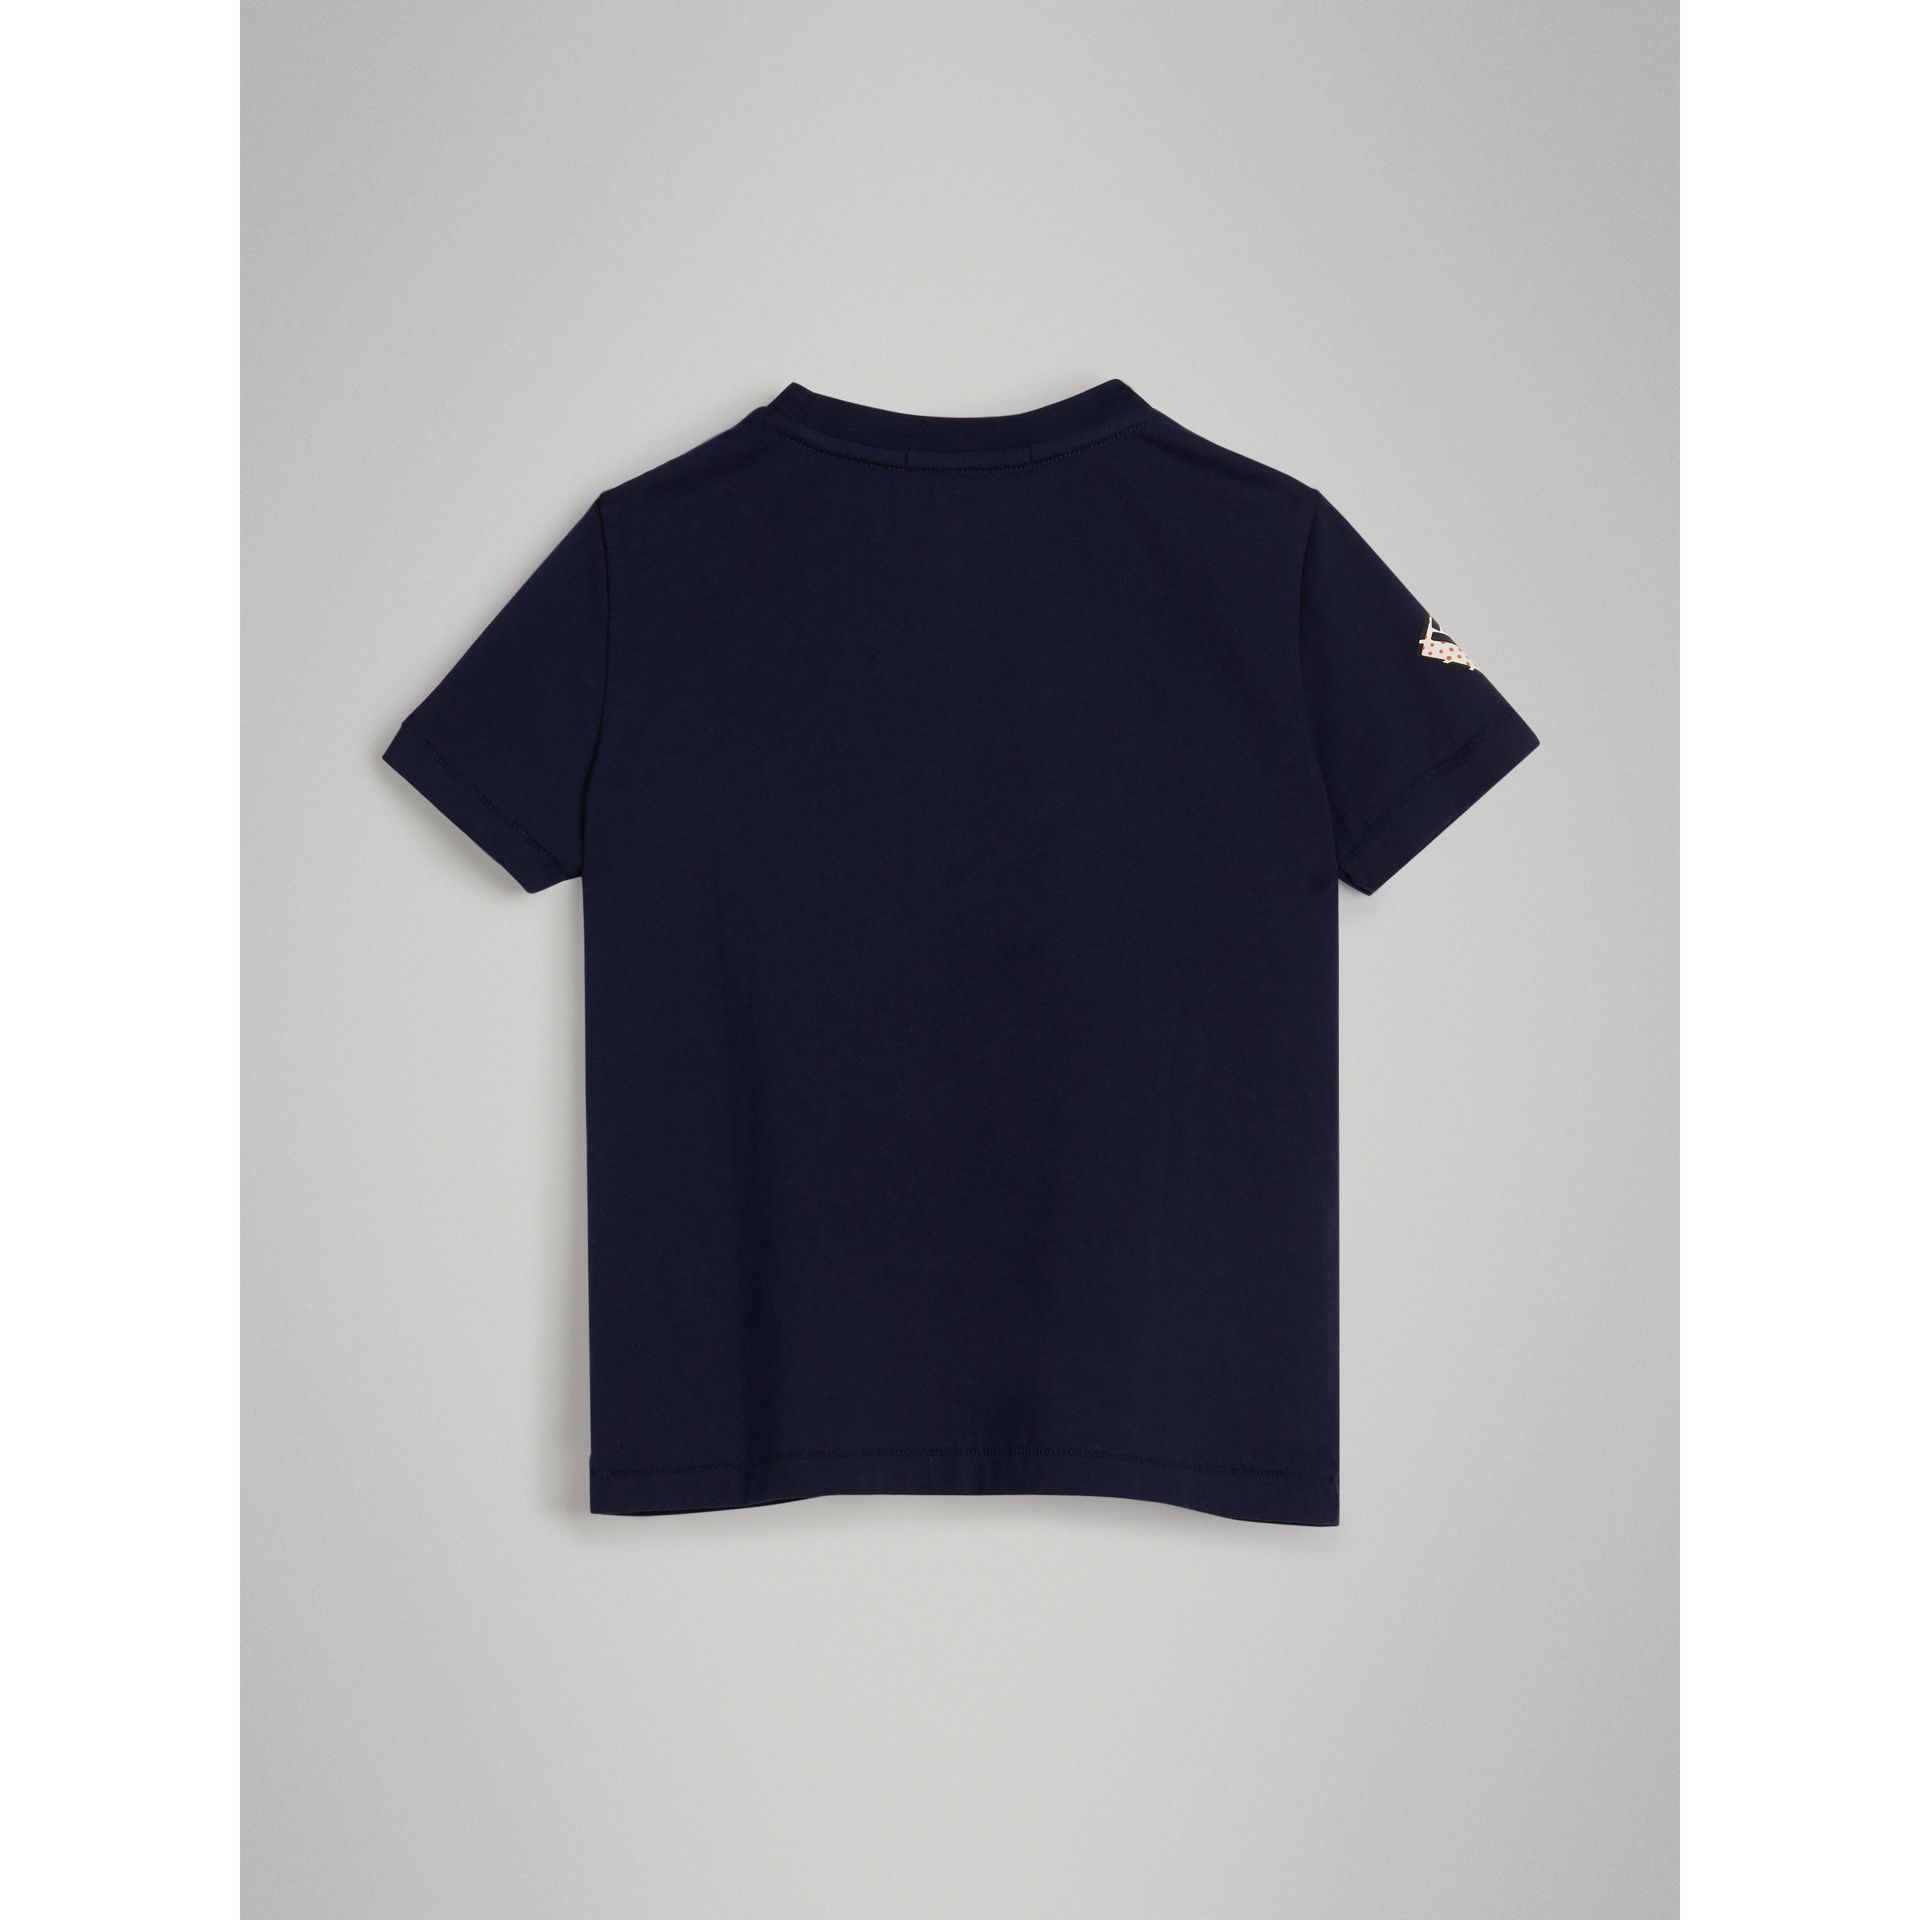 Graffiti Ticket Print Cotton T-shirt in Navy | Burberry - gallery image 3